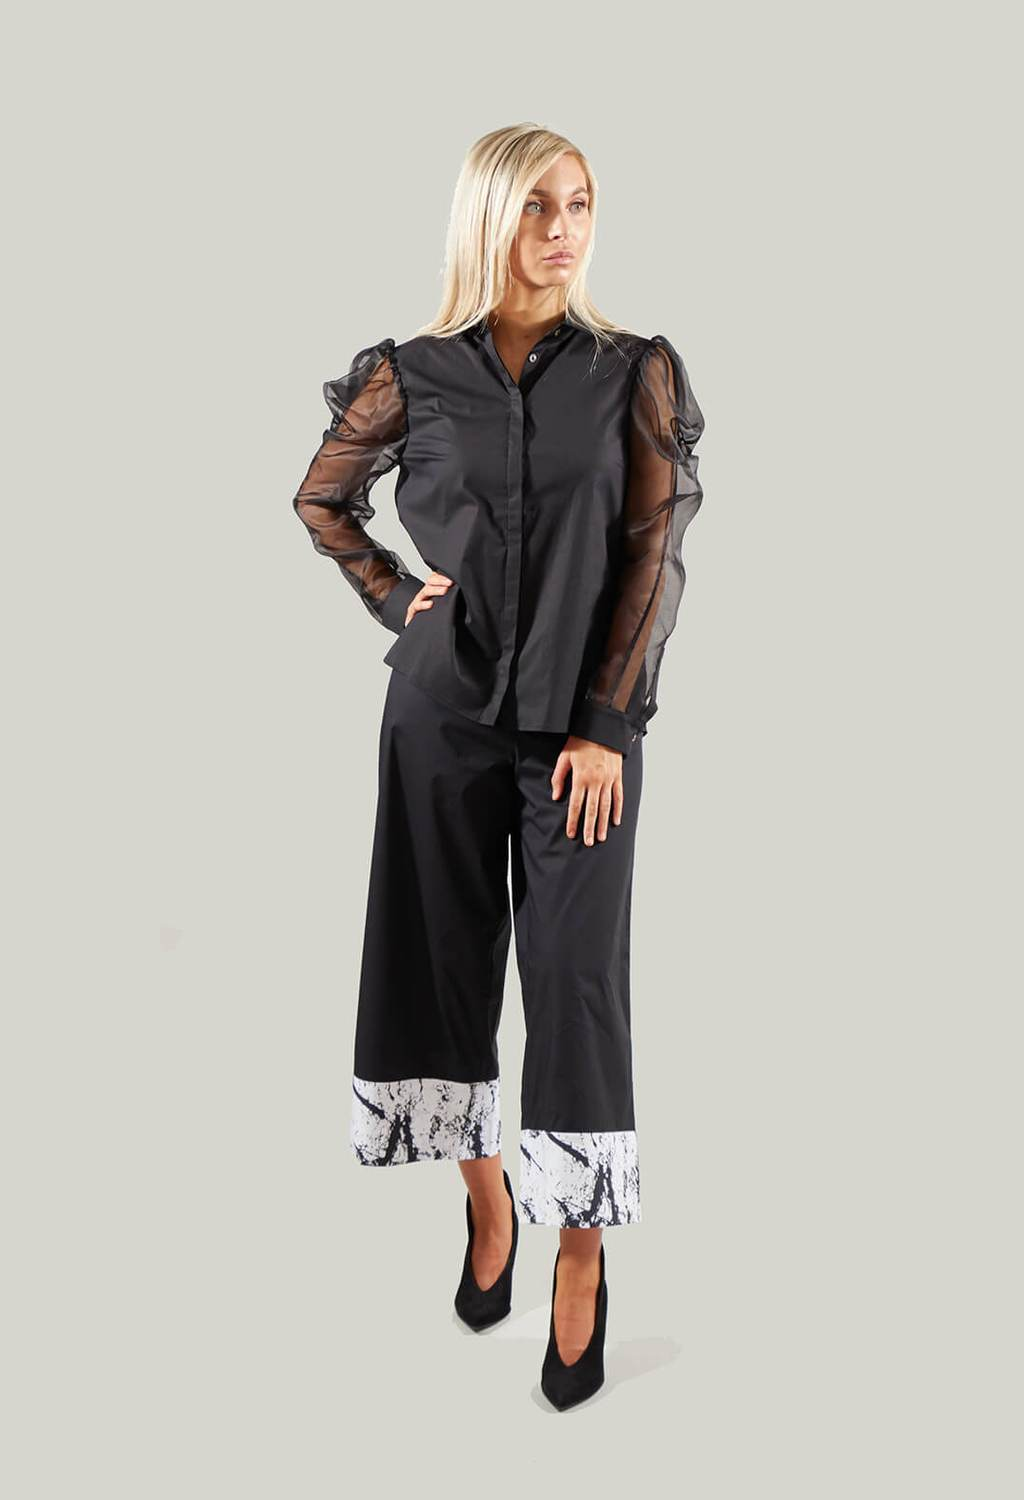 Shirt with Sheer Sleeves in Kuuya